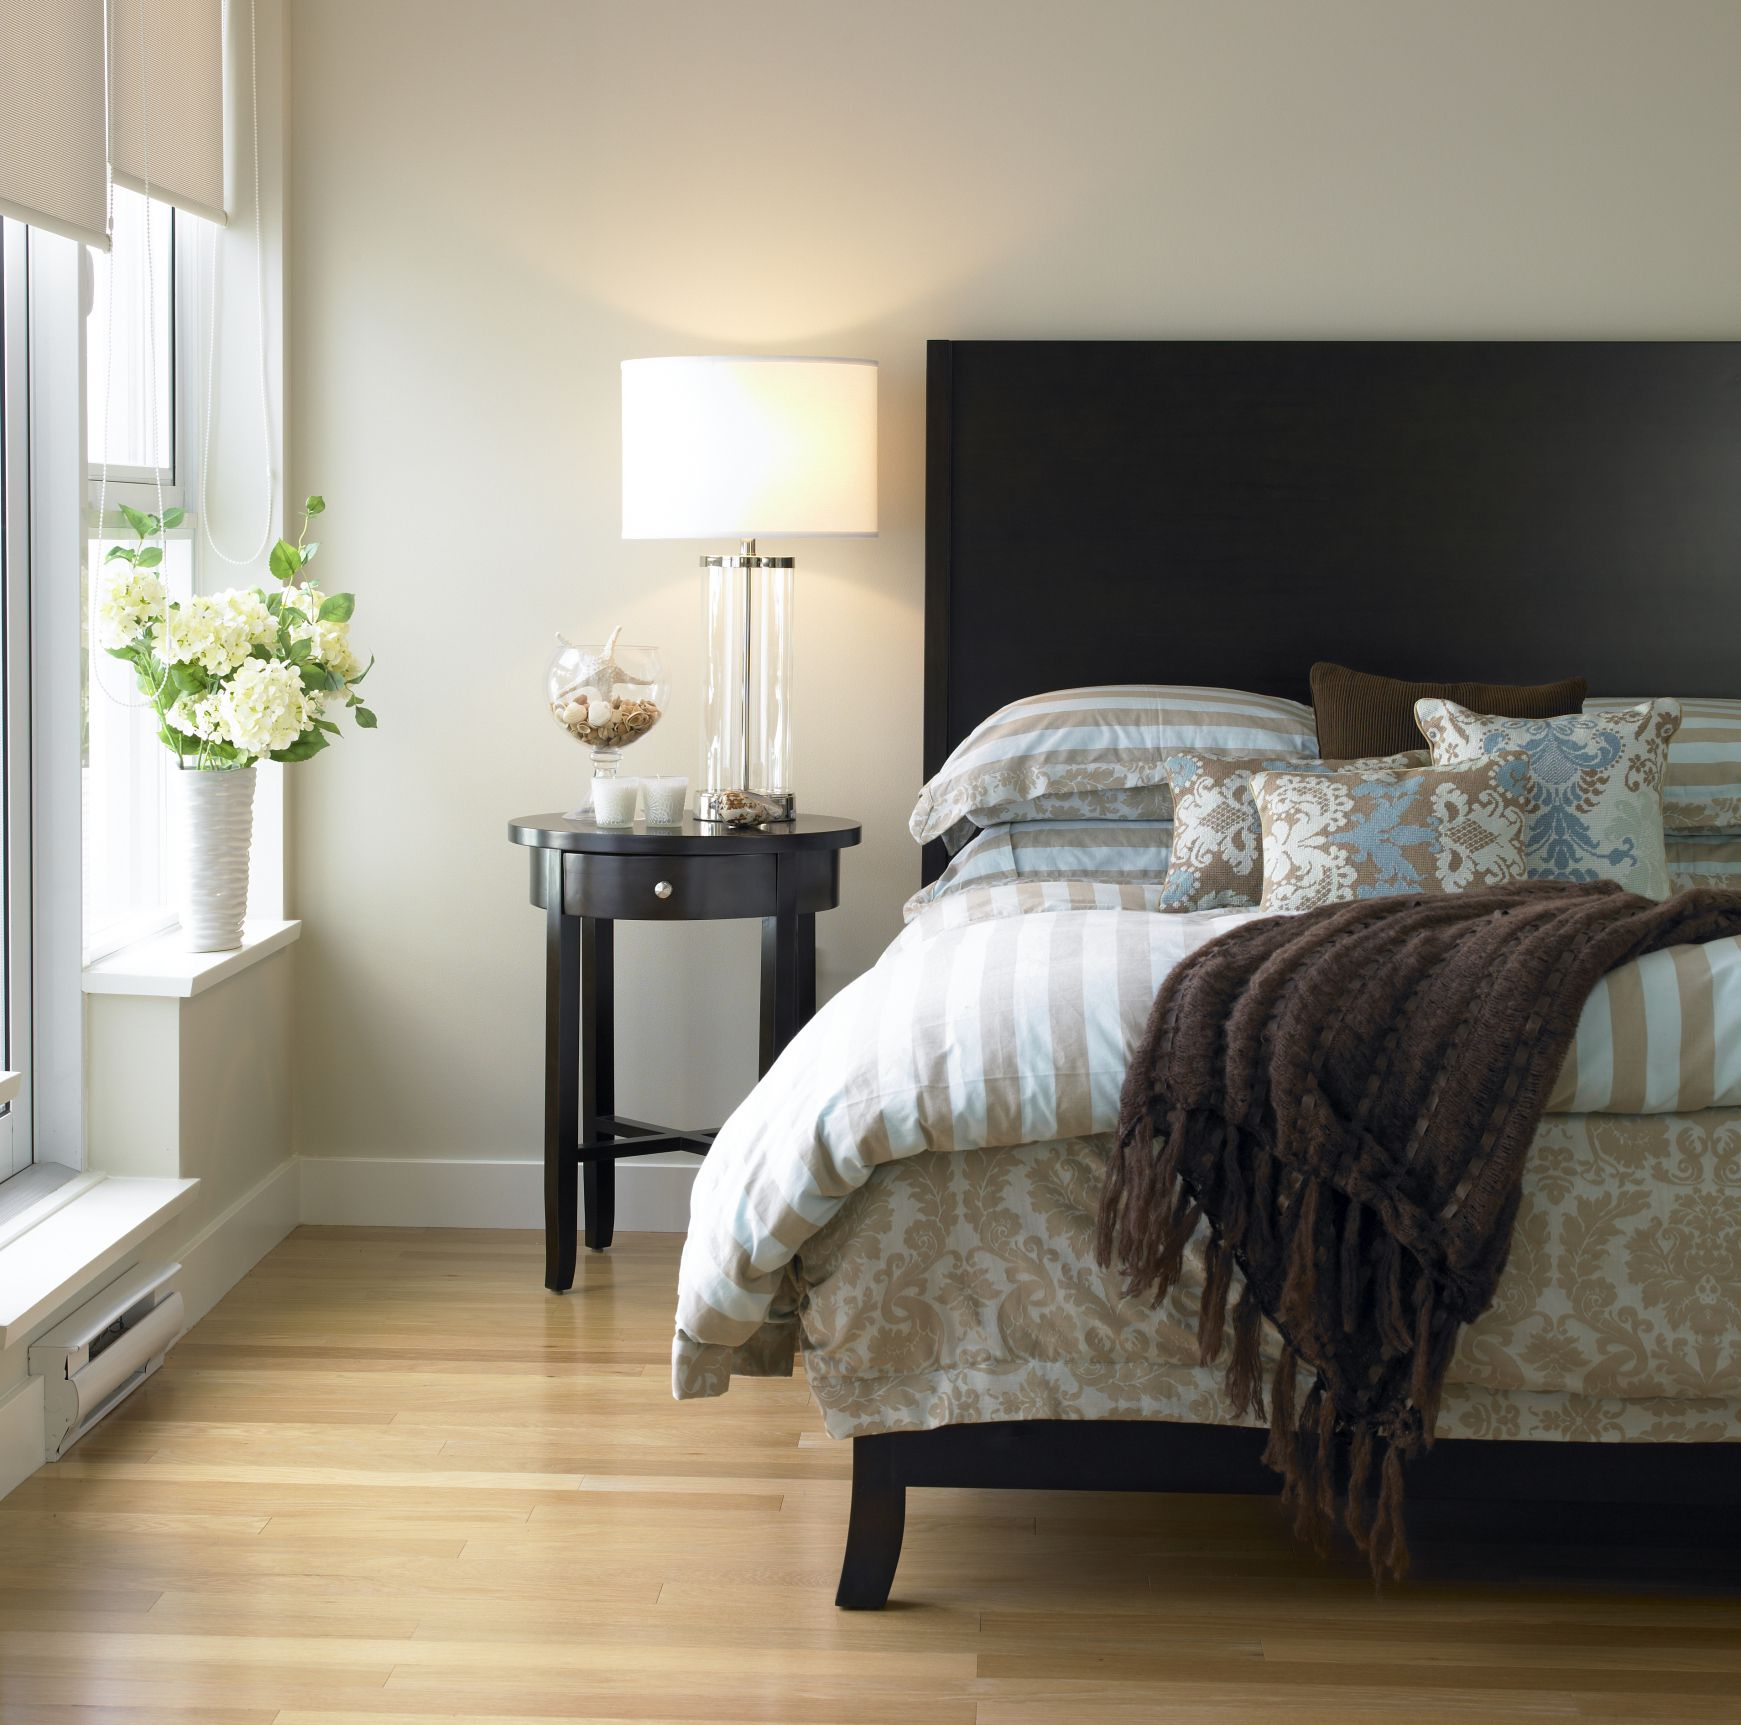 Our Go To Neutral Paint Colors - Chicagoland Home Staging